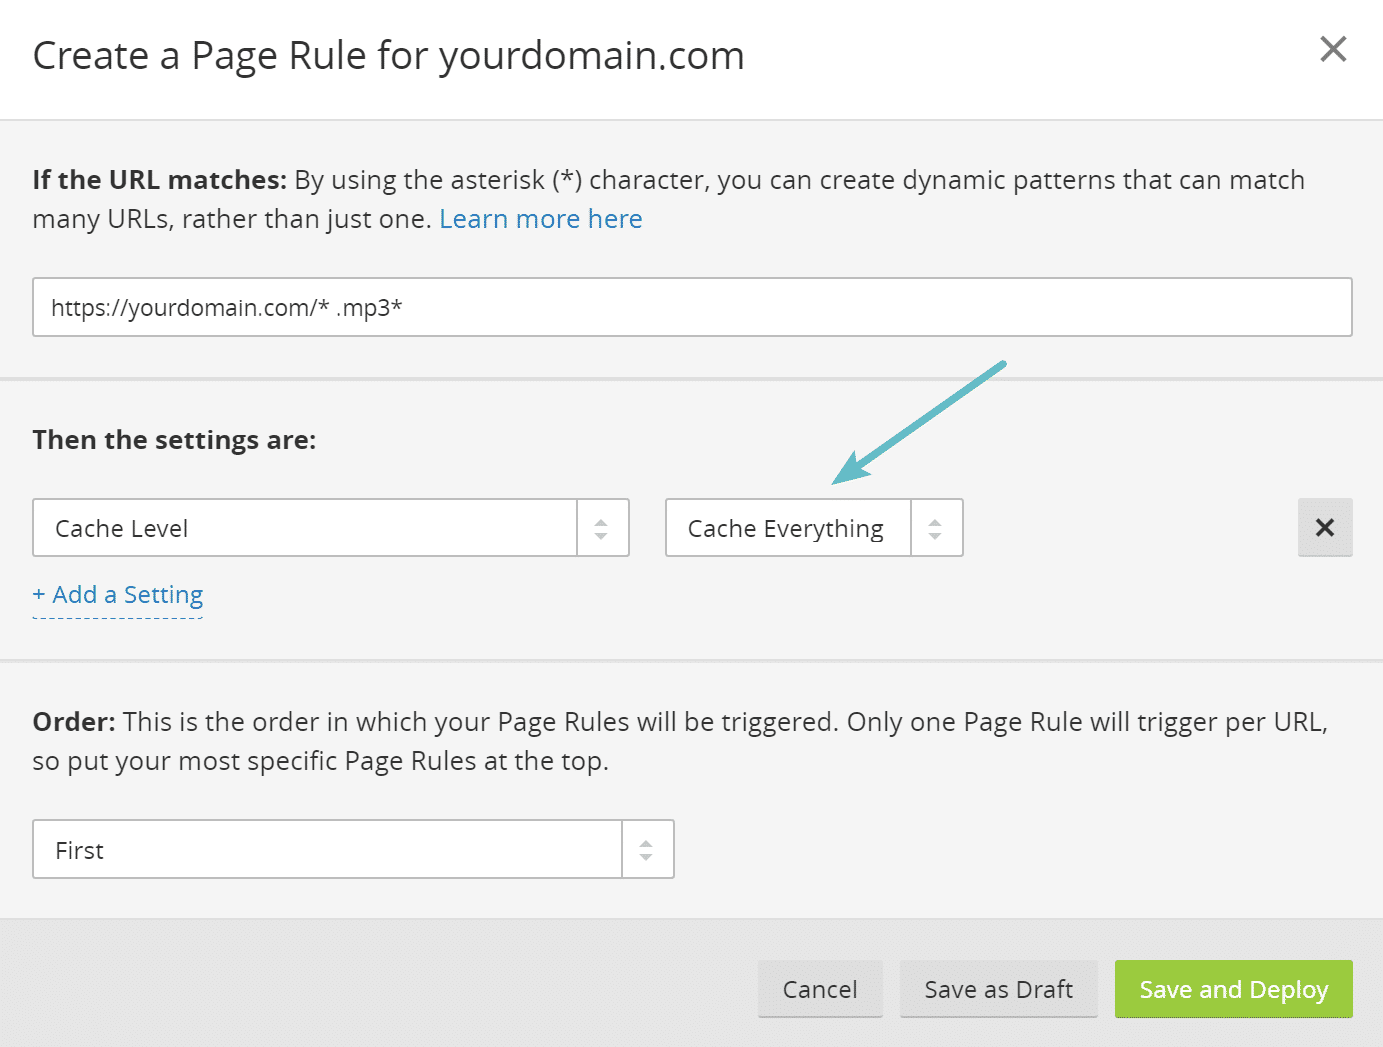 Cloudflare page rule to cache .mp3